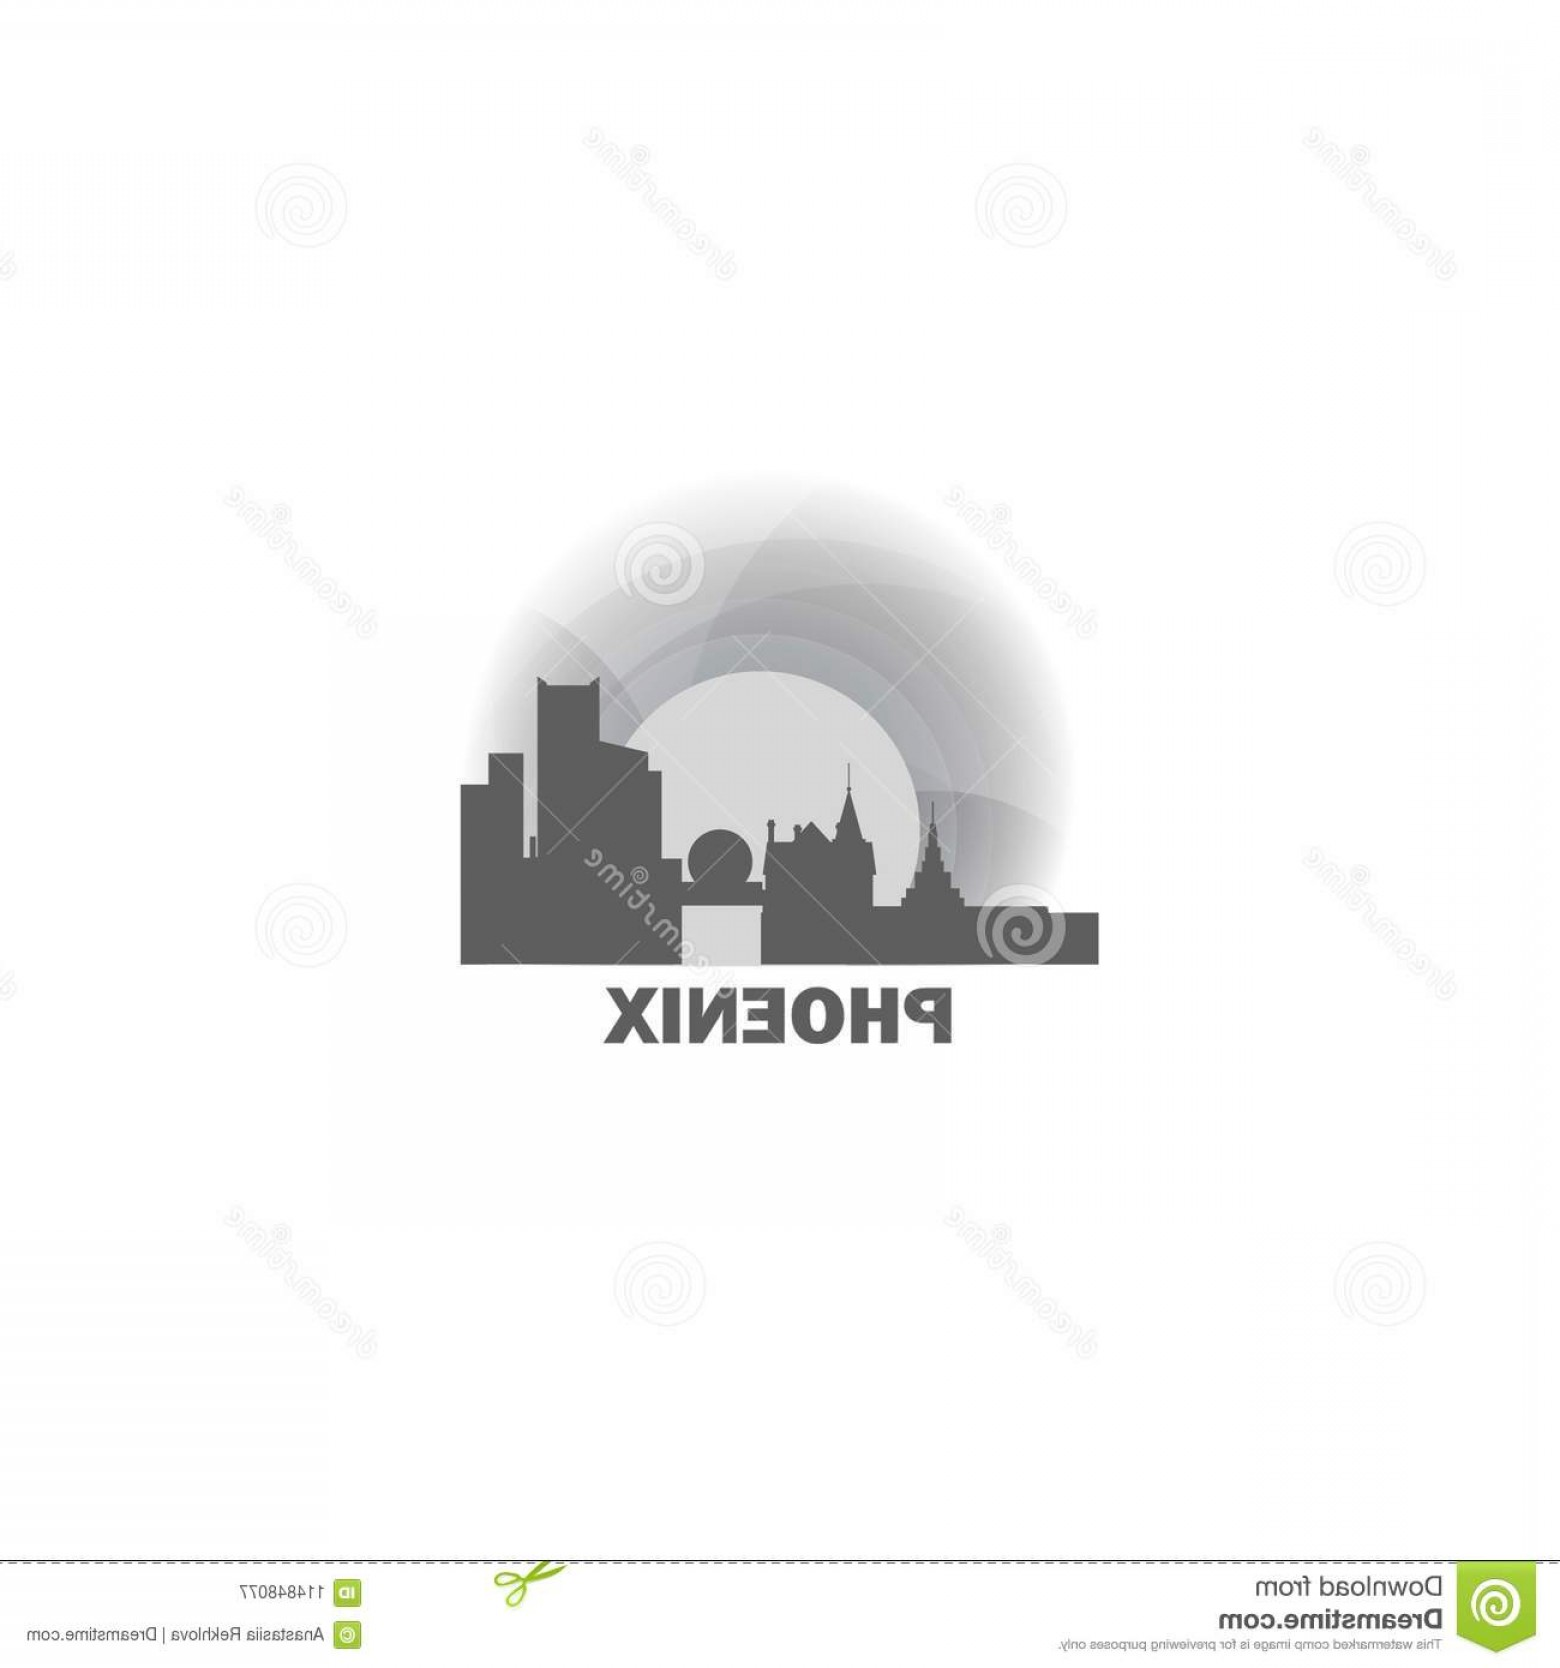 Wicked Boston Skyline Silhouette Vector: Phoenix City Skyline Silhouette Vector Logo Illustration Usa United States America Phoenix City Skyline Landscape Silhouette Image